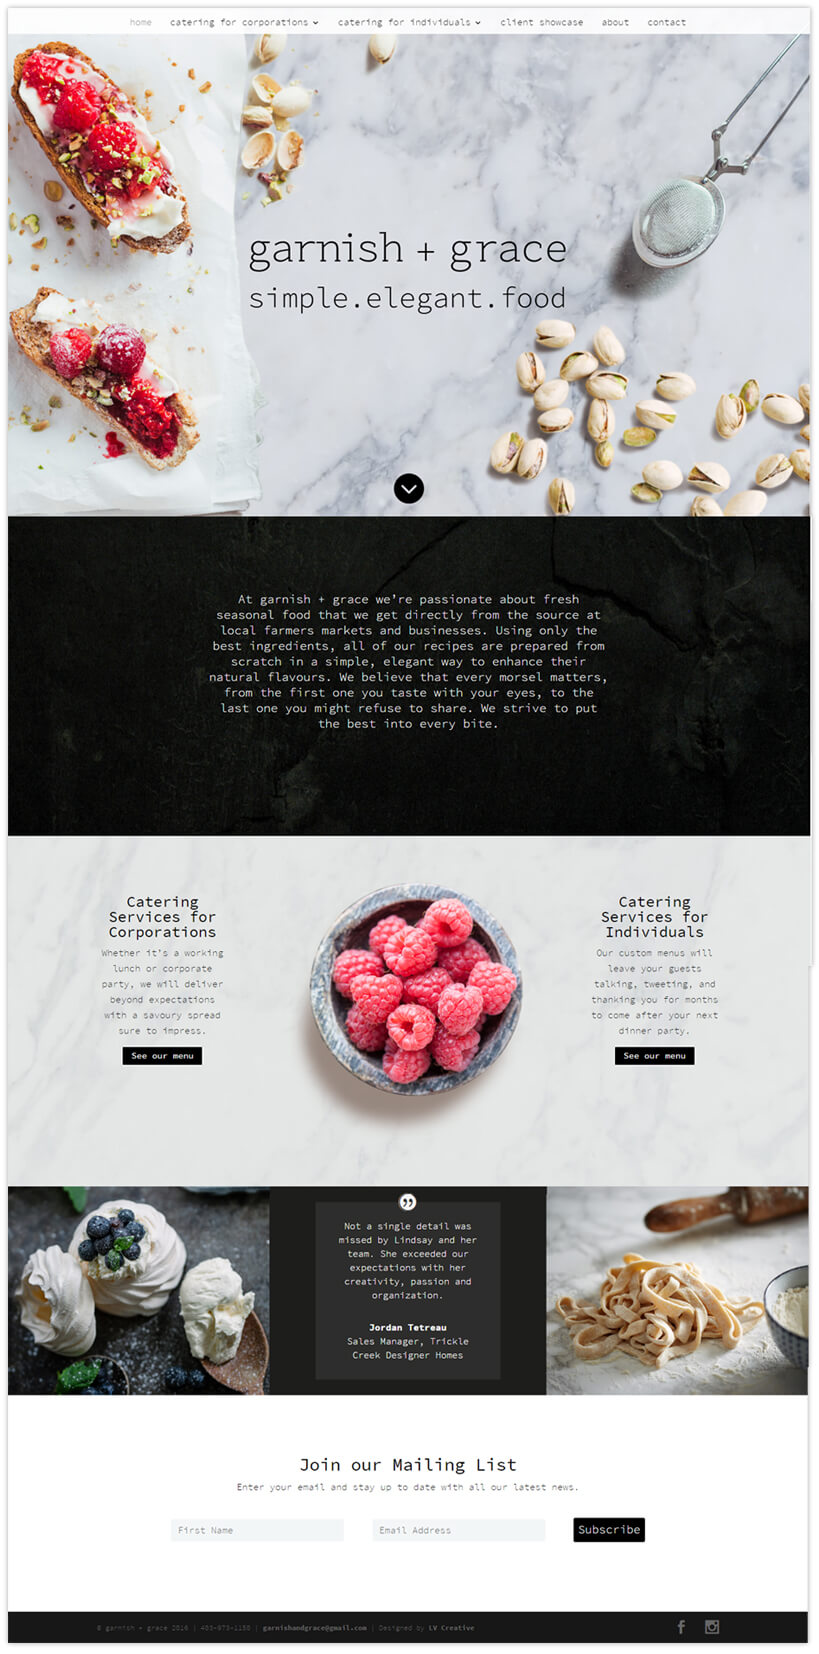 garnish + grace web pages